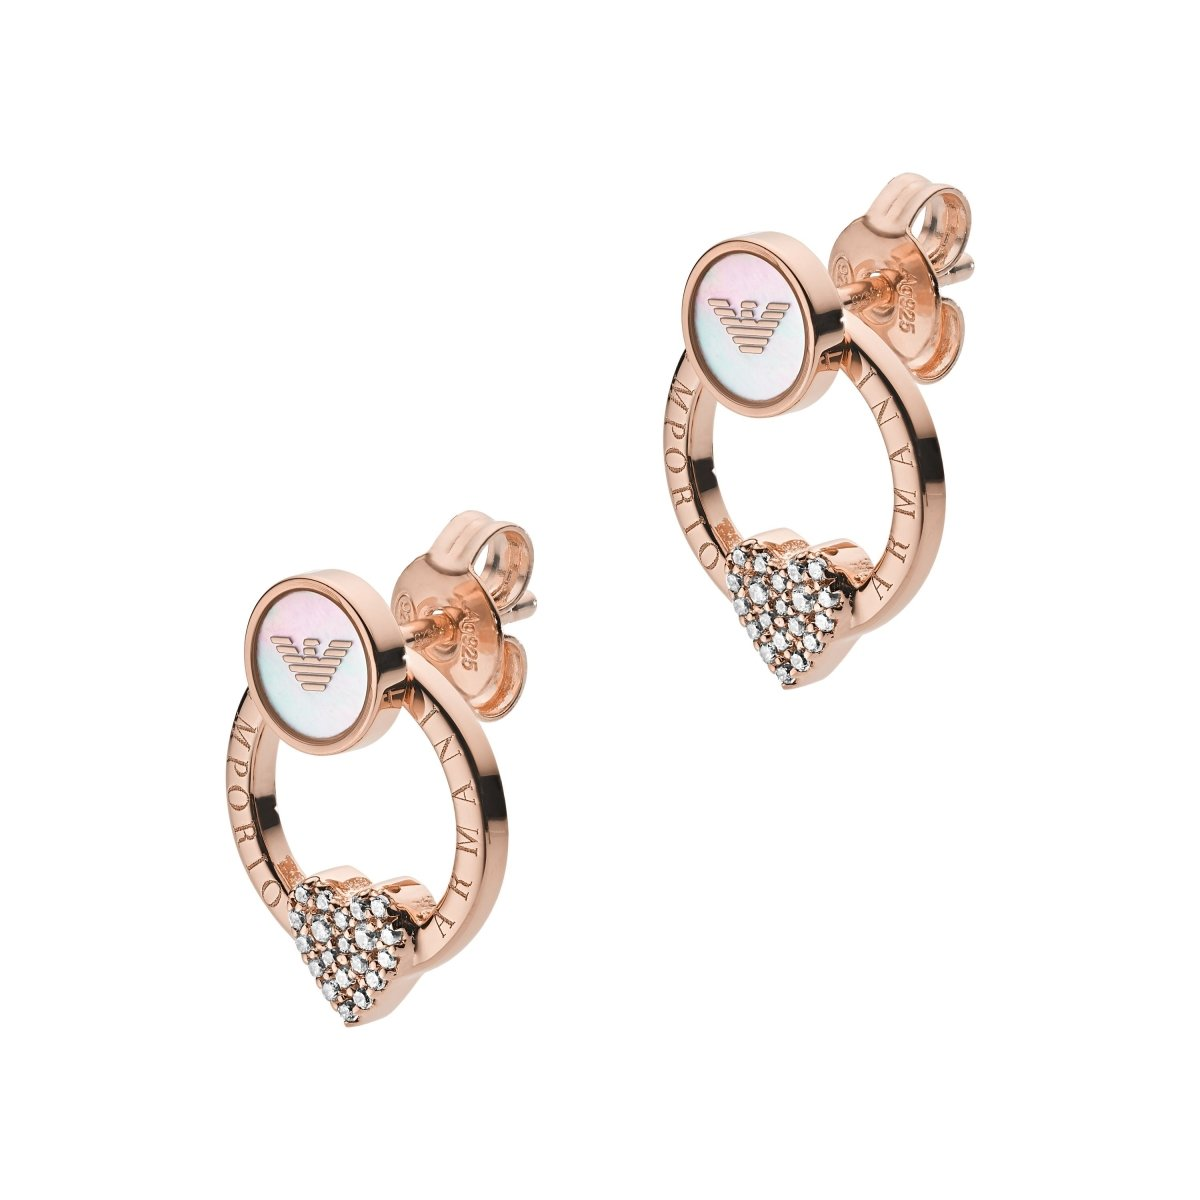 Emporio Armani EG3430221 Earrings with Rose Gold Plated Silver - Goldy Jewelry Store